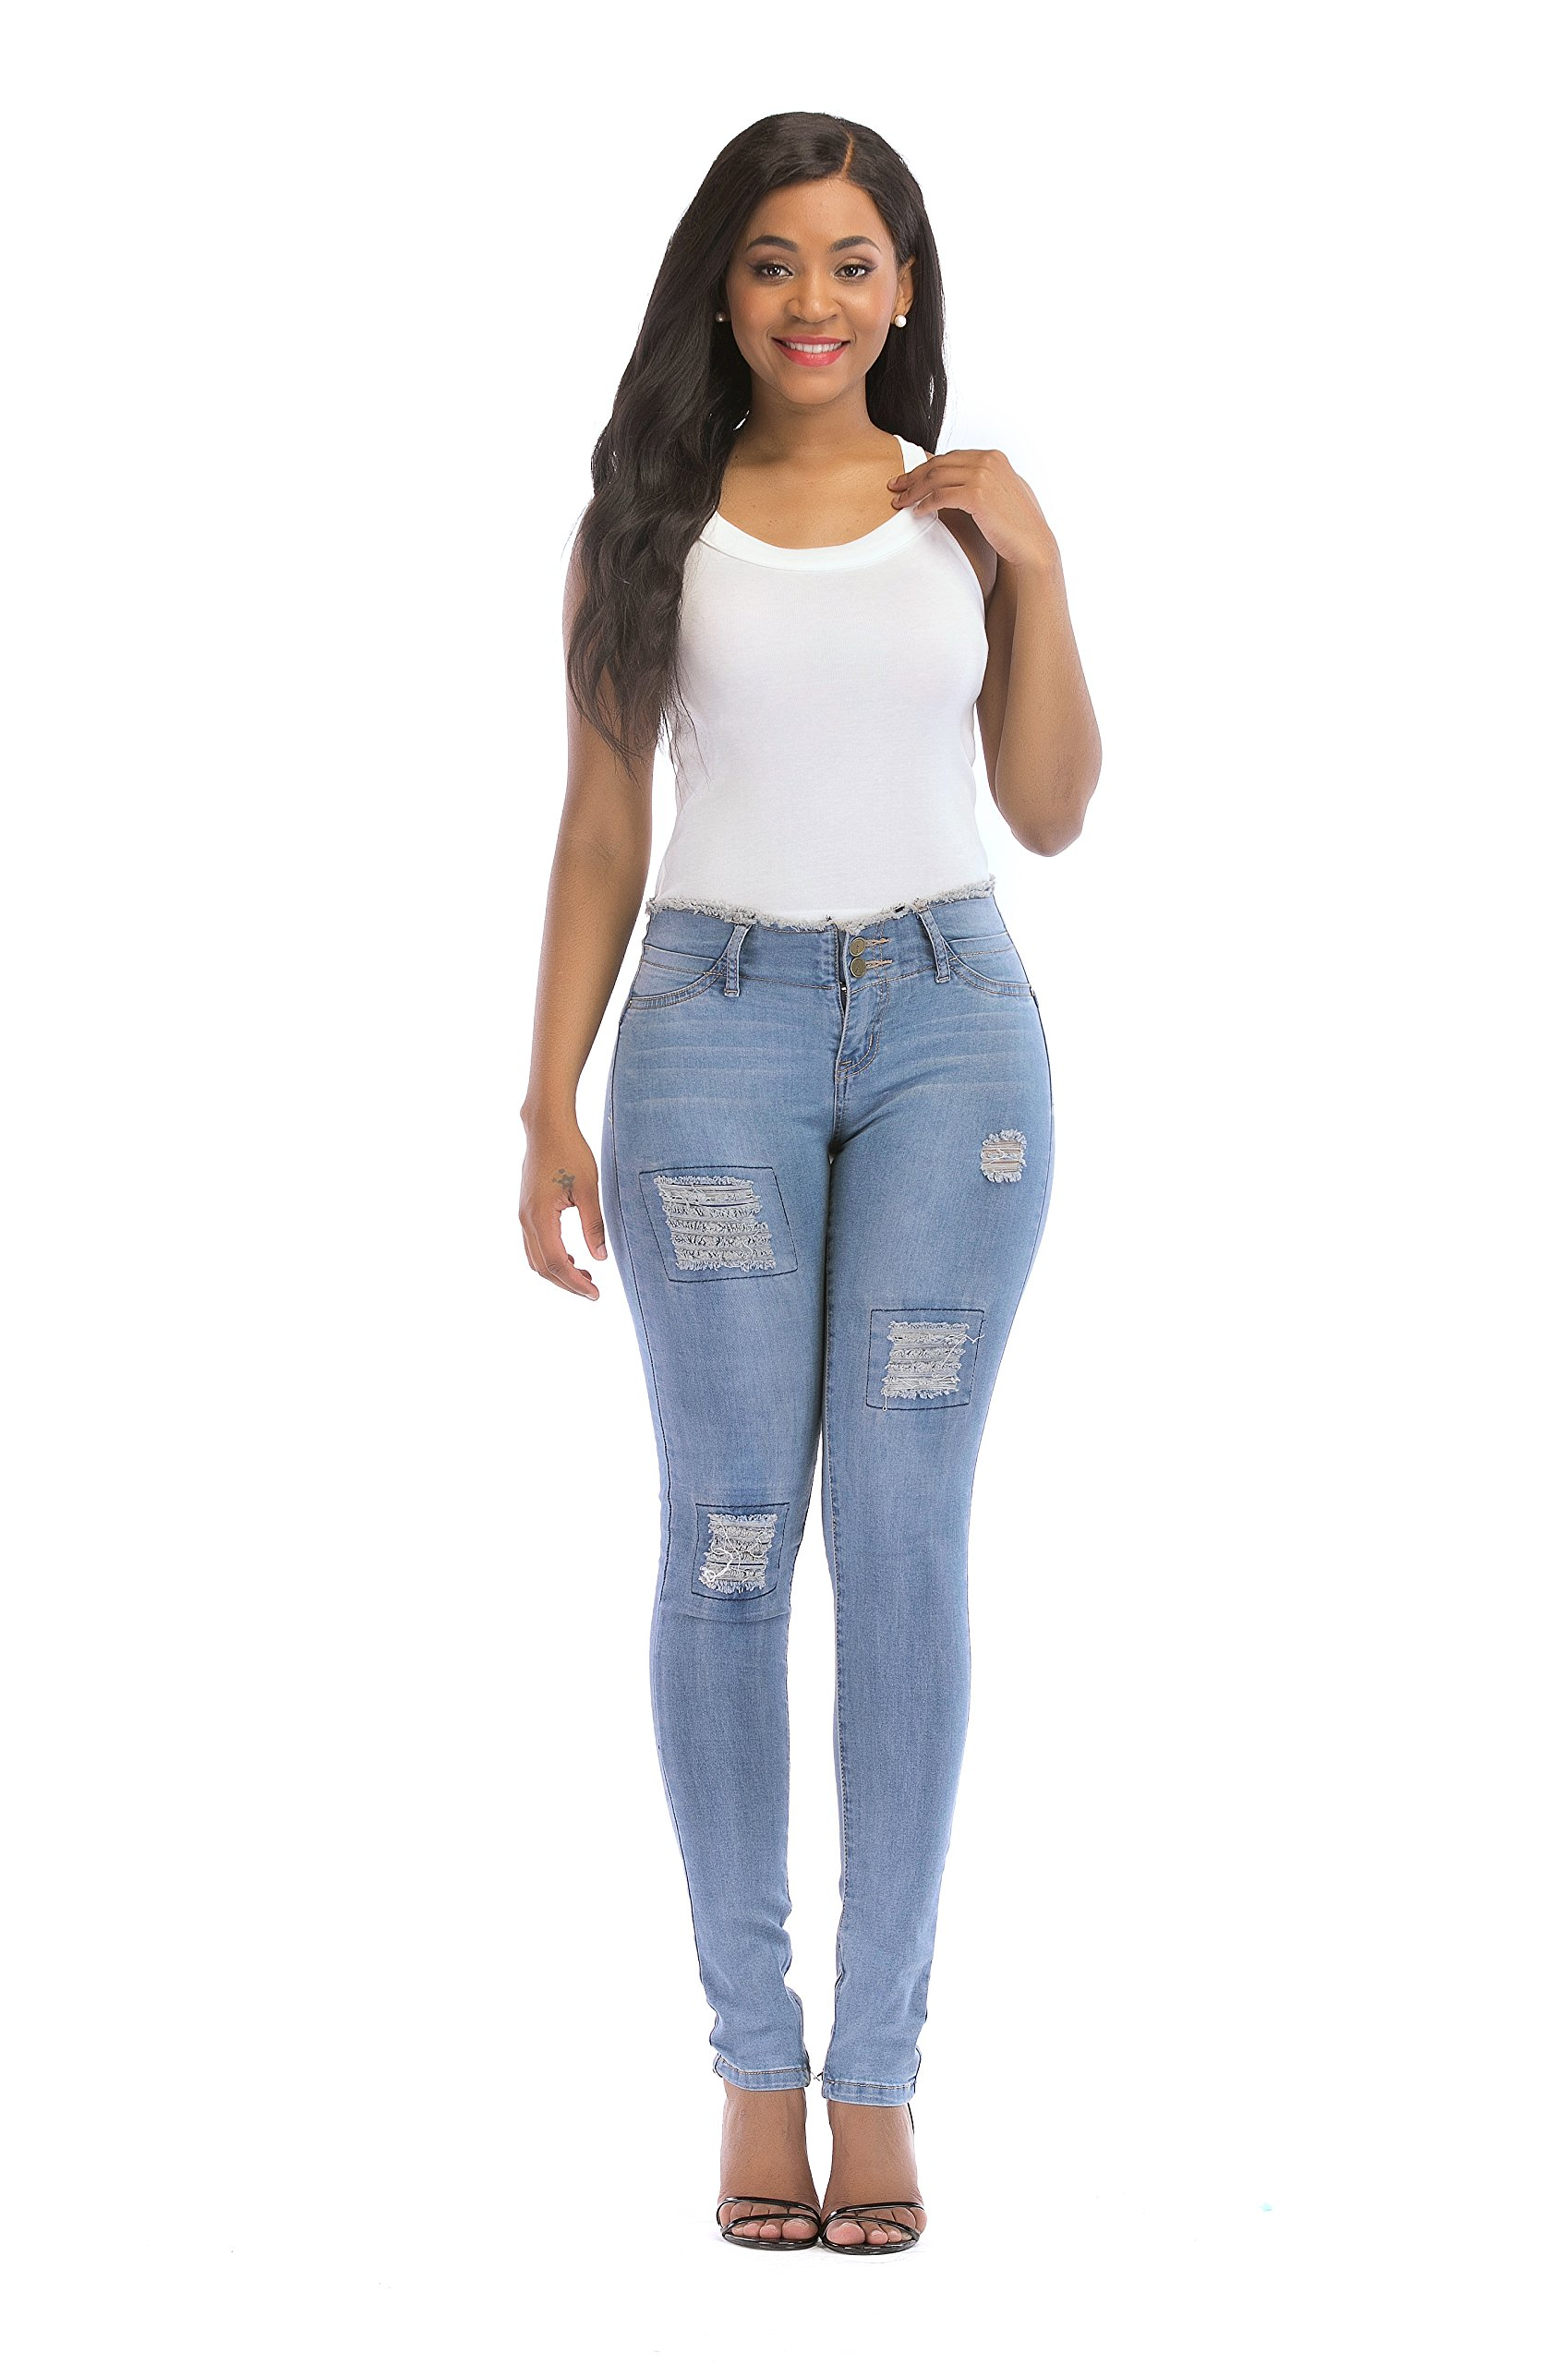 POPTIME Women's Juniors Ripped Distressed Stretchy Denim Skinny Jeans (13, Blue)